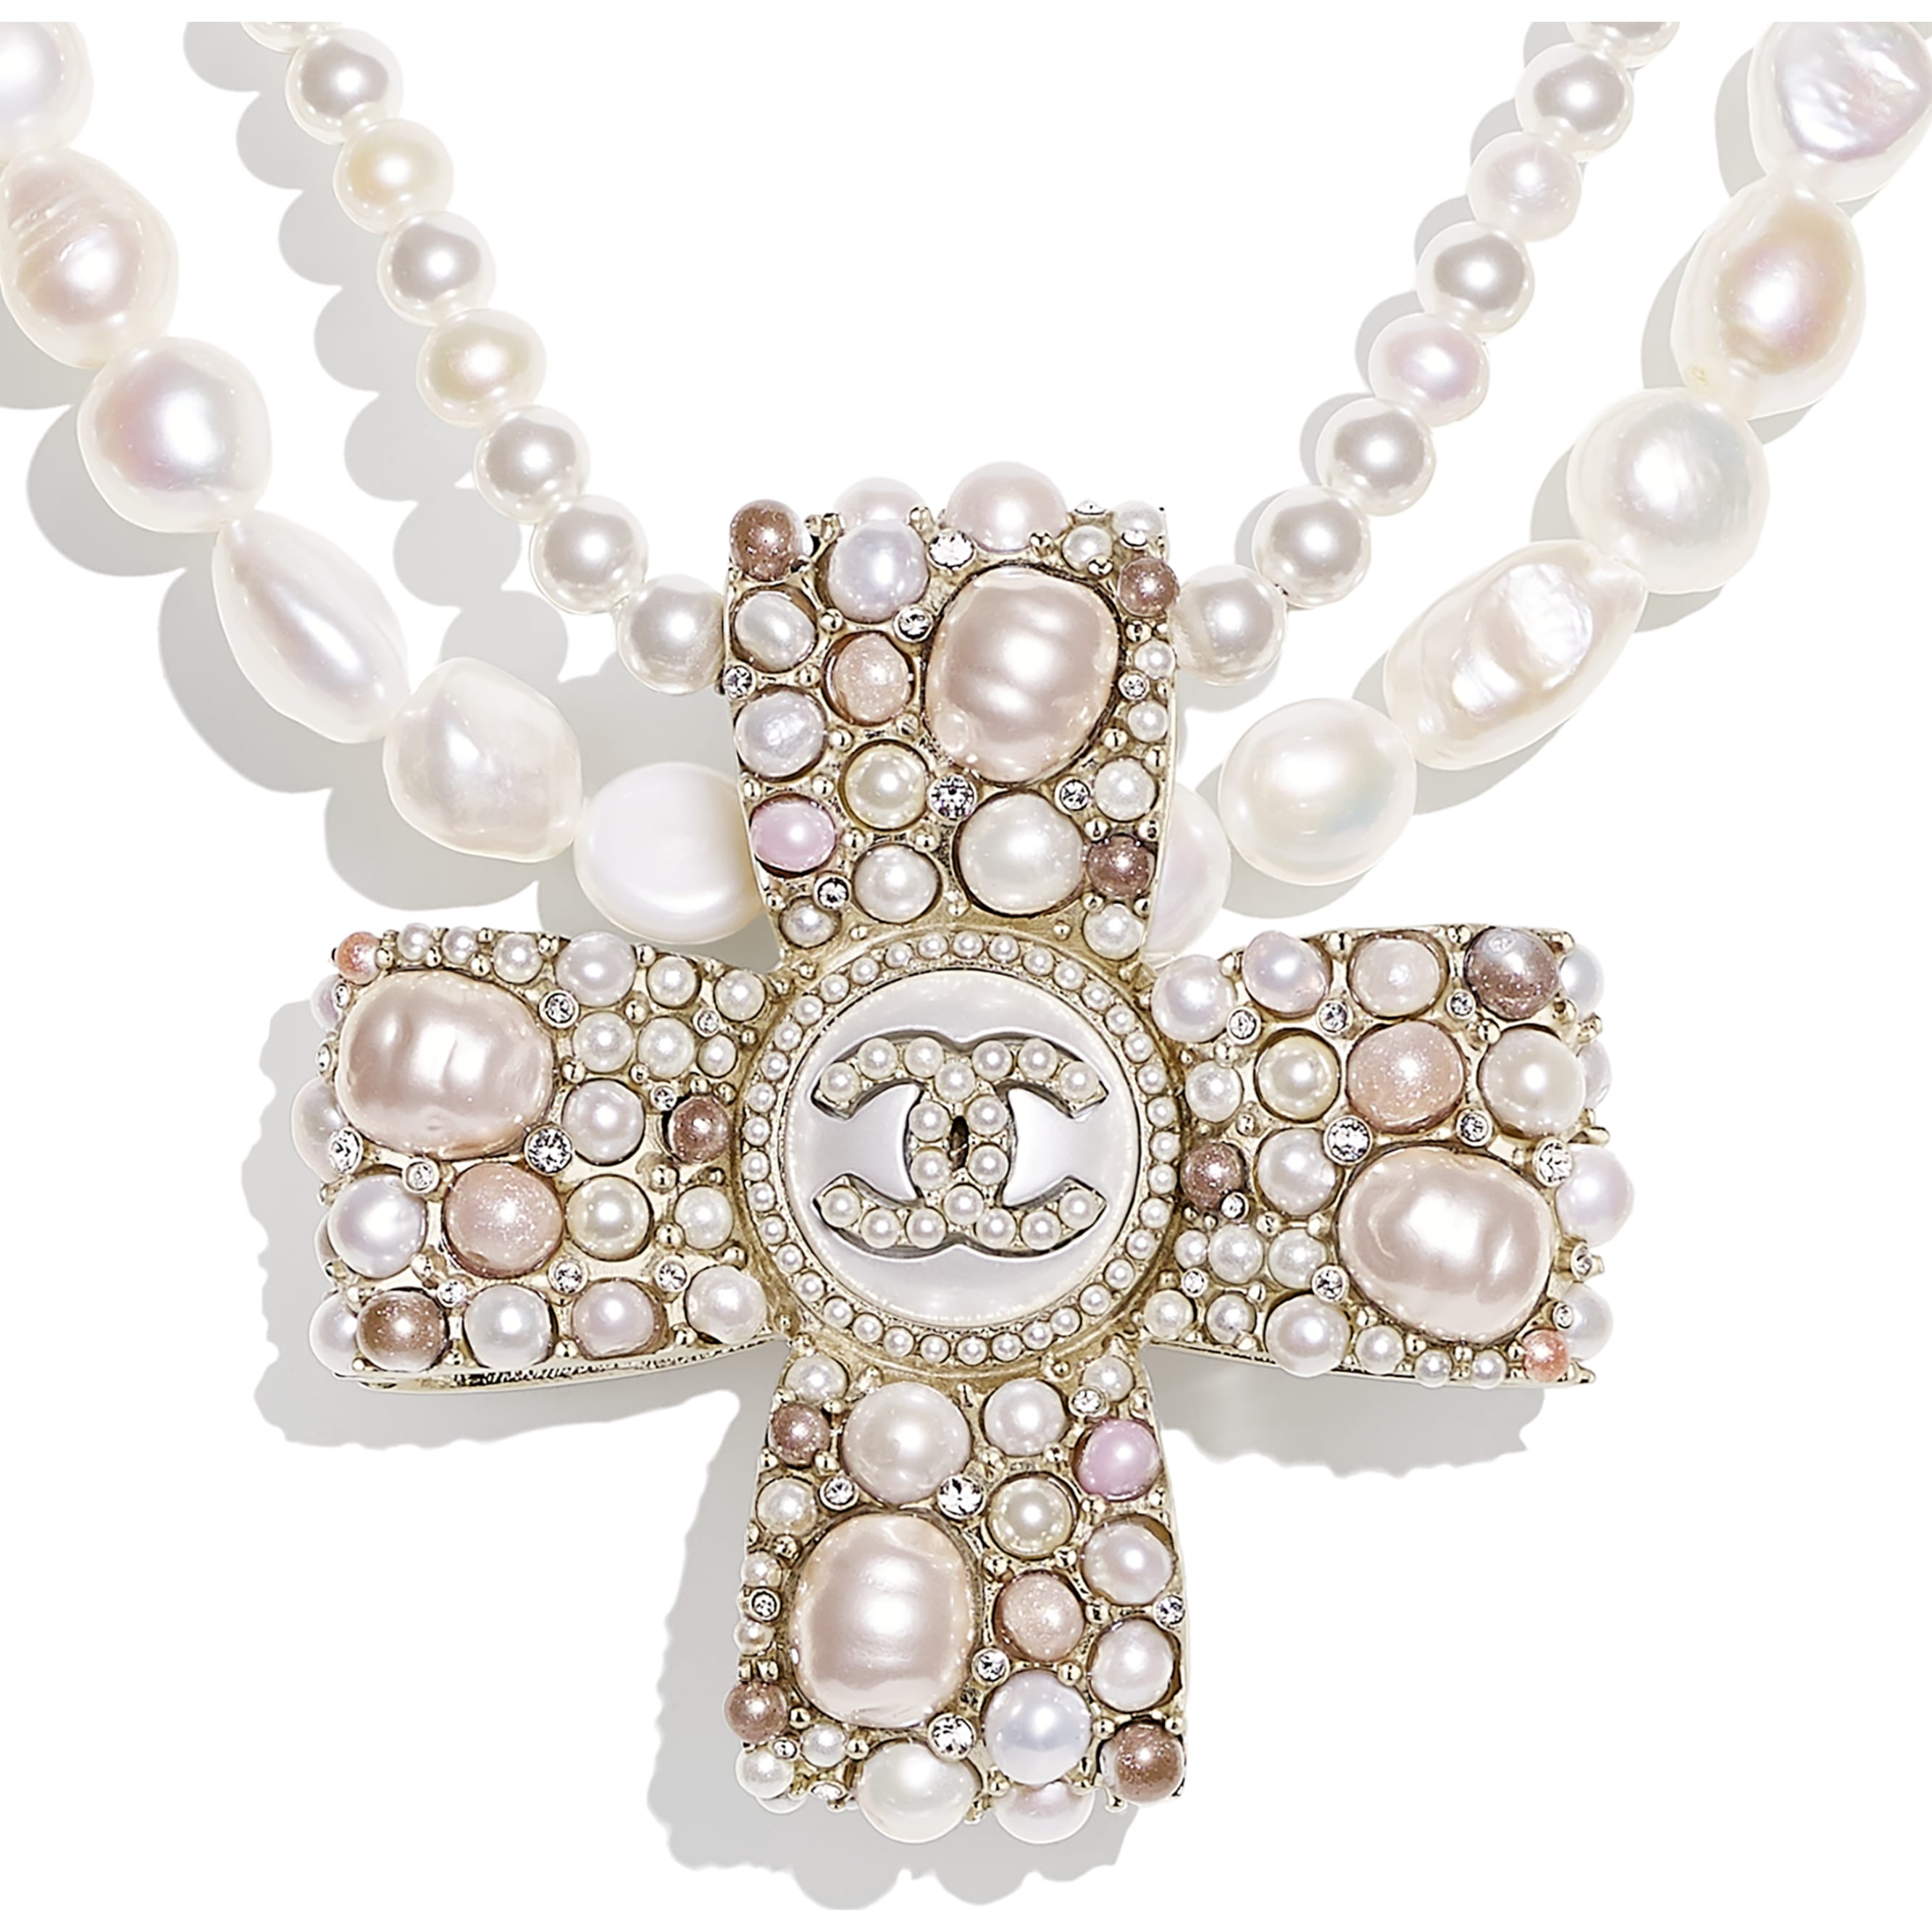 Necklace - Gold, Pearly White, Pink & Crystal - Metal, Cultured Fresh Water Pearls, Glass Pearls, Imitation Pearls & Diamanté - CHANEL - Other view - see standard sized version